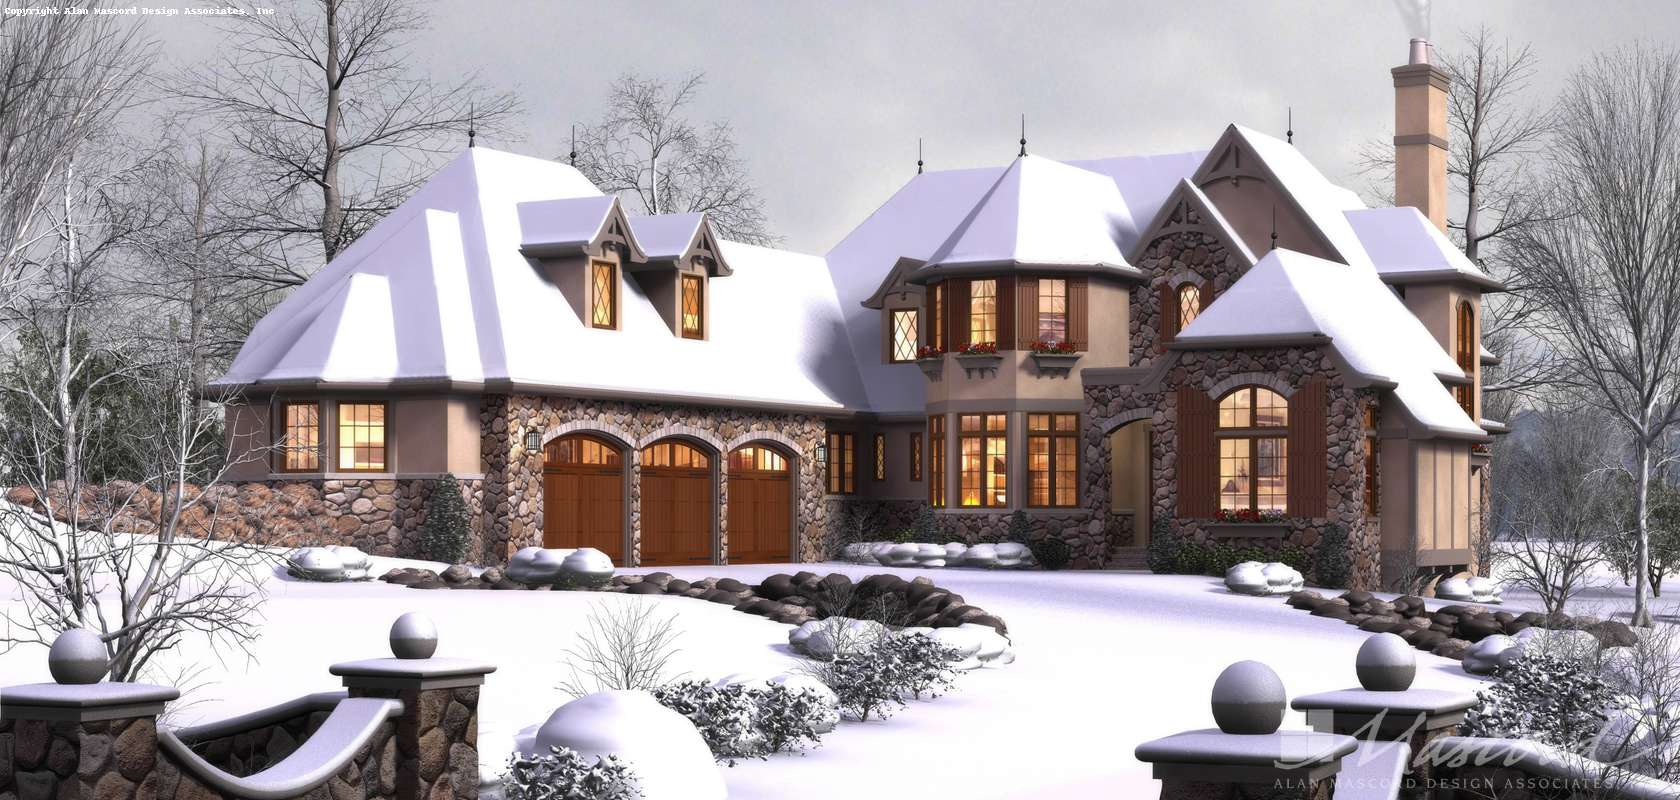 Mascord House Plan 2470: The Rivendell Manor